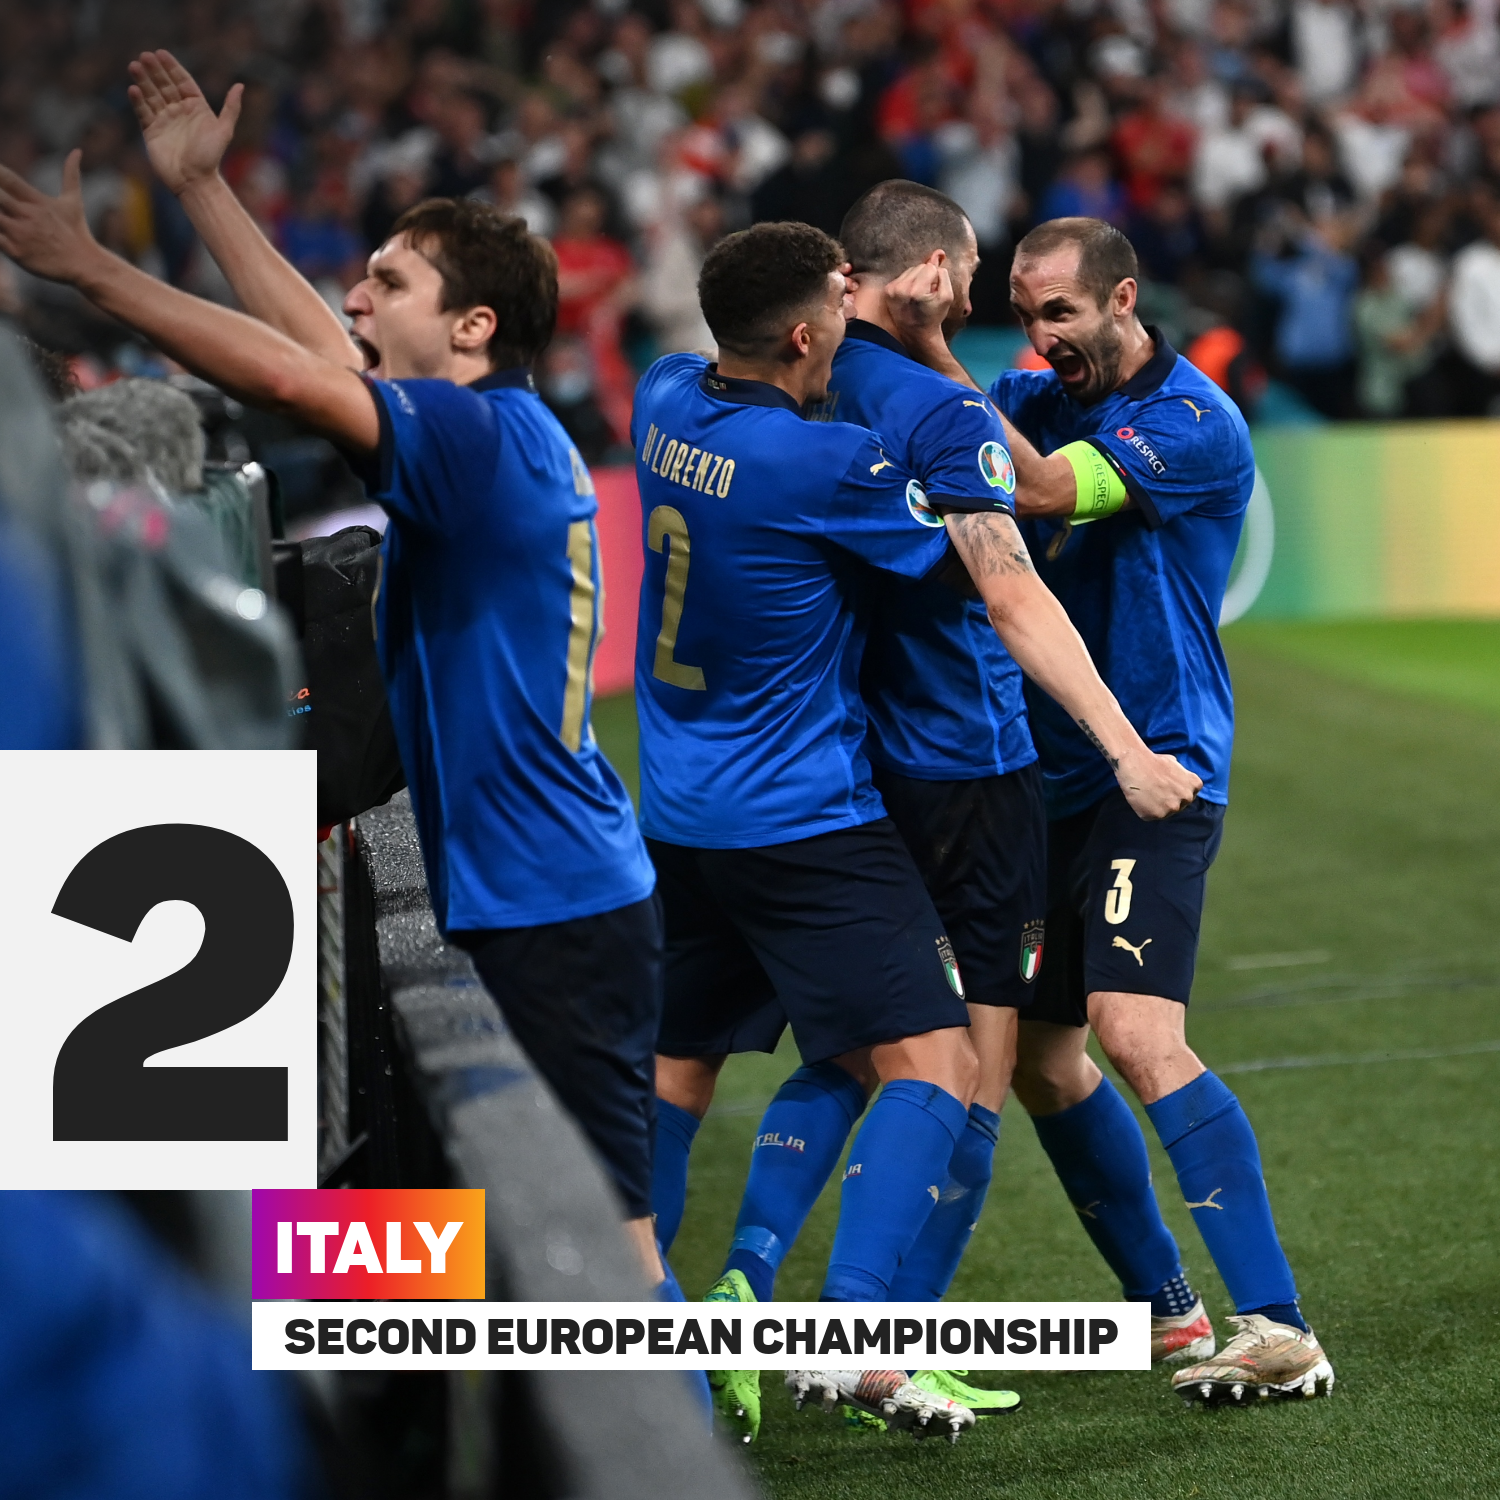 Italy have won their first European Championship since 1968